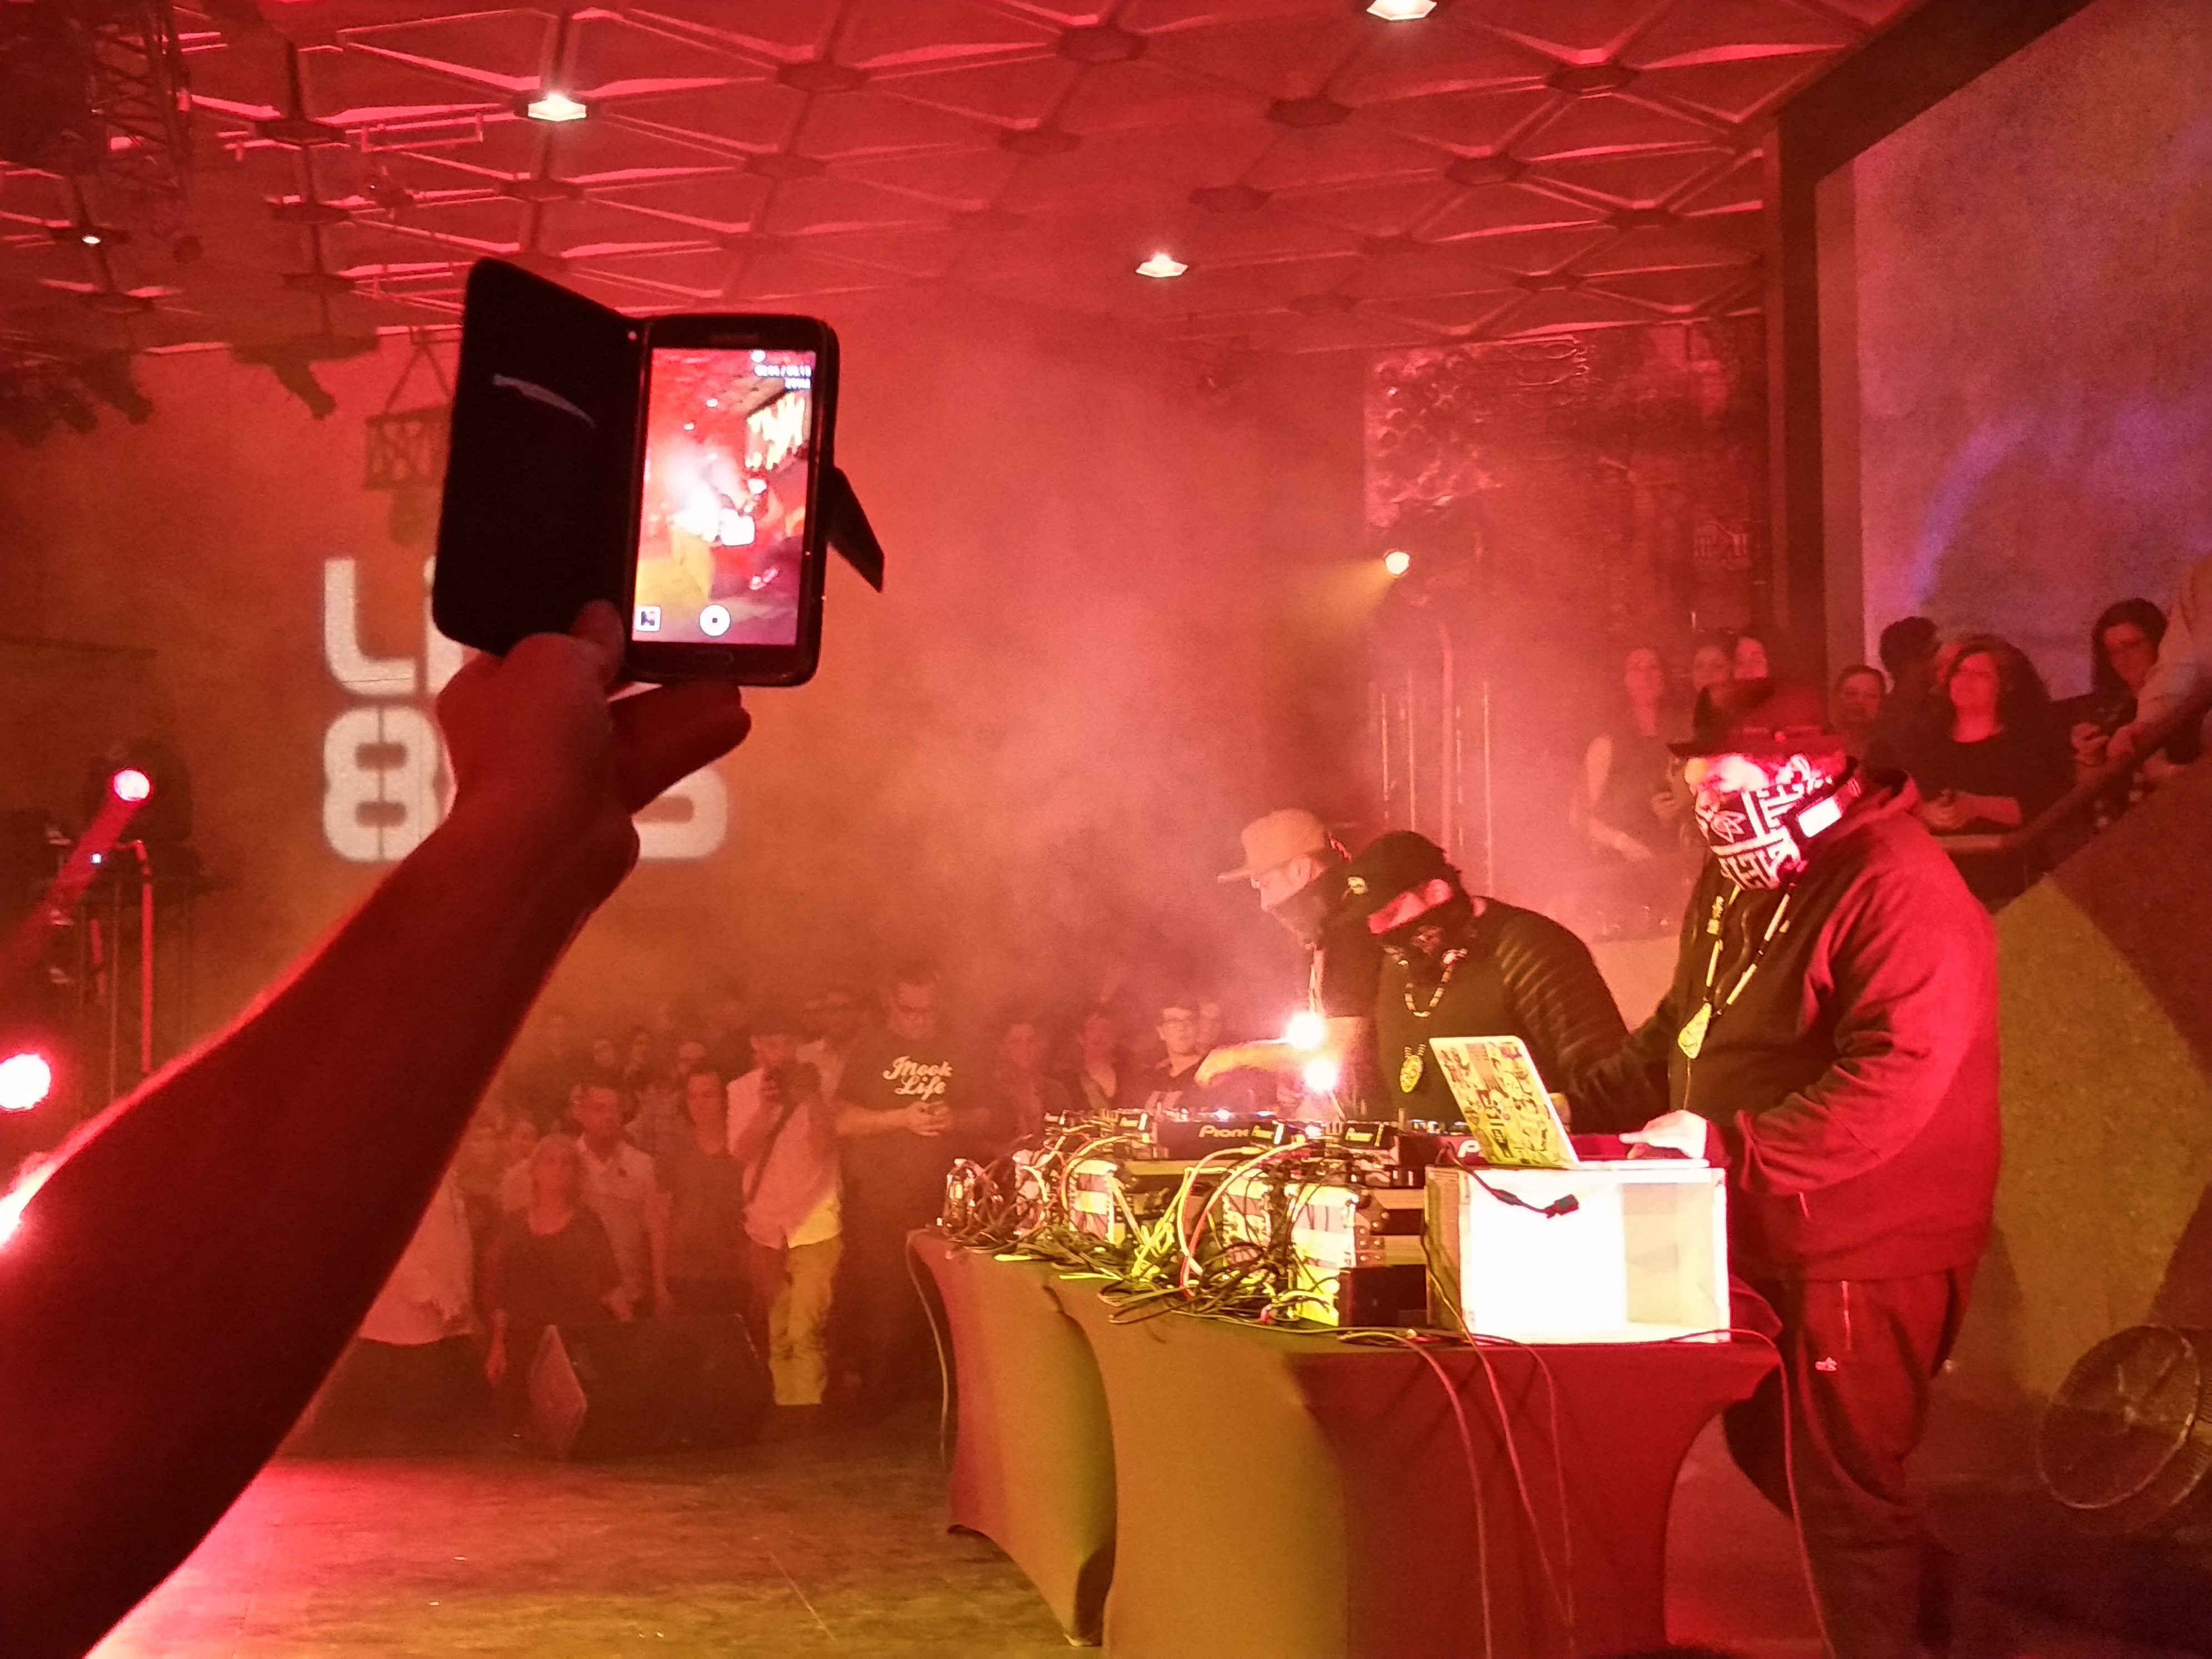 For many, A Tribe Called Red was the highlight of the evening. Photo by Karen Henderson, Ottawa Magazine.